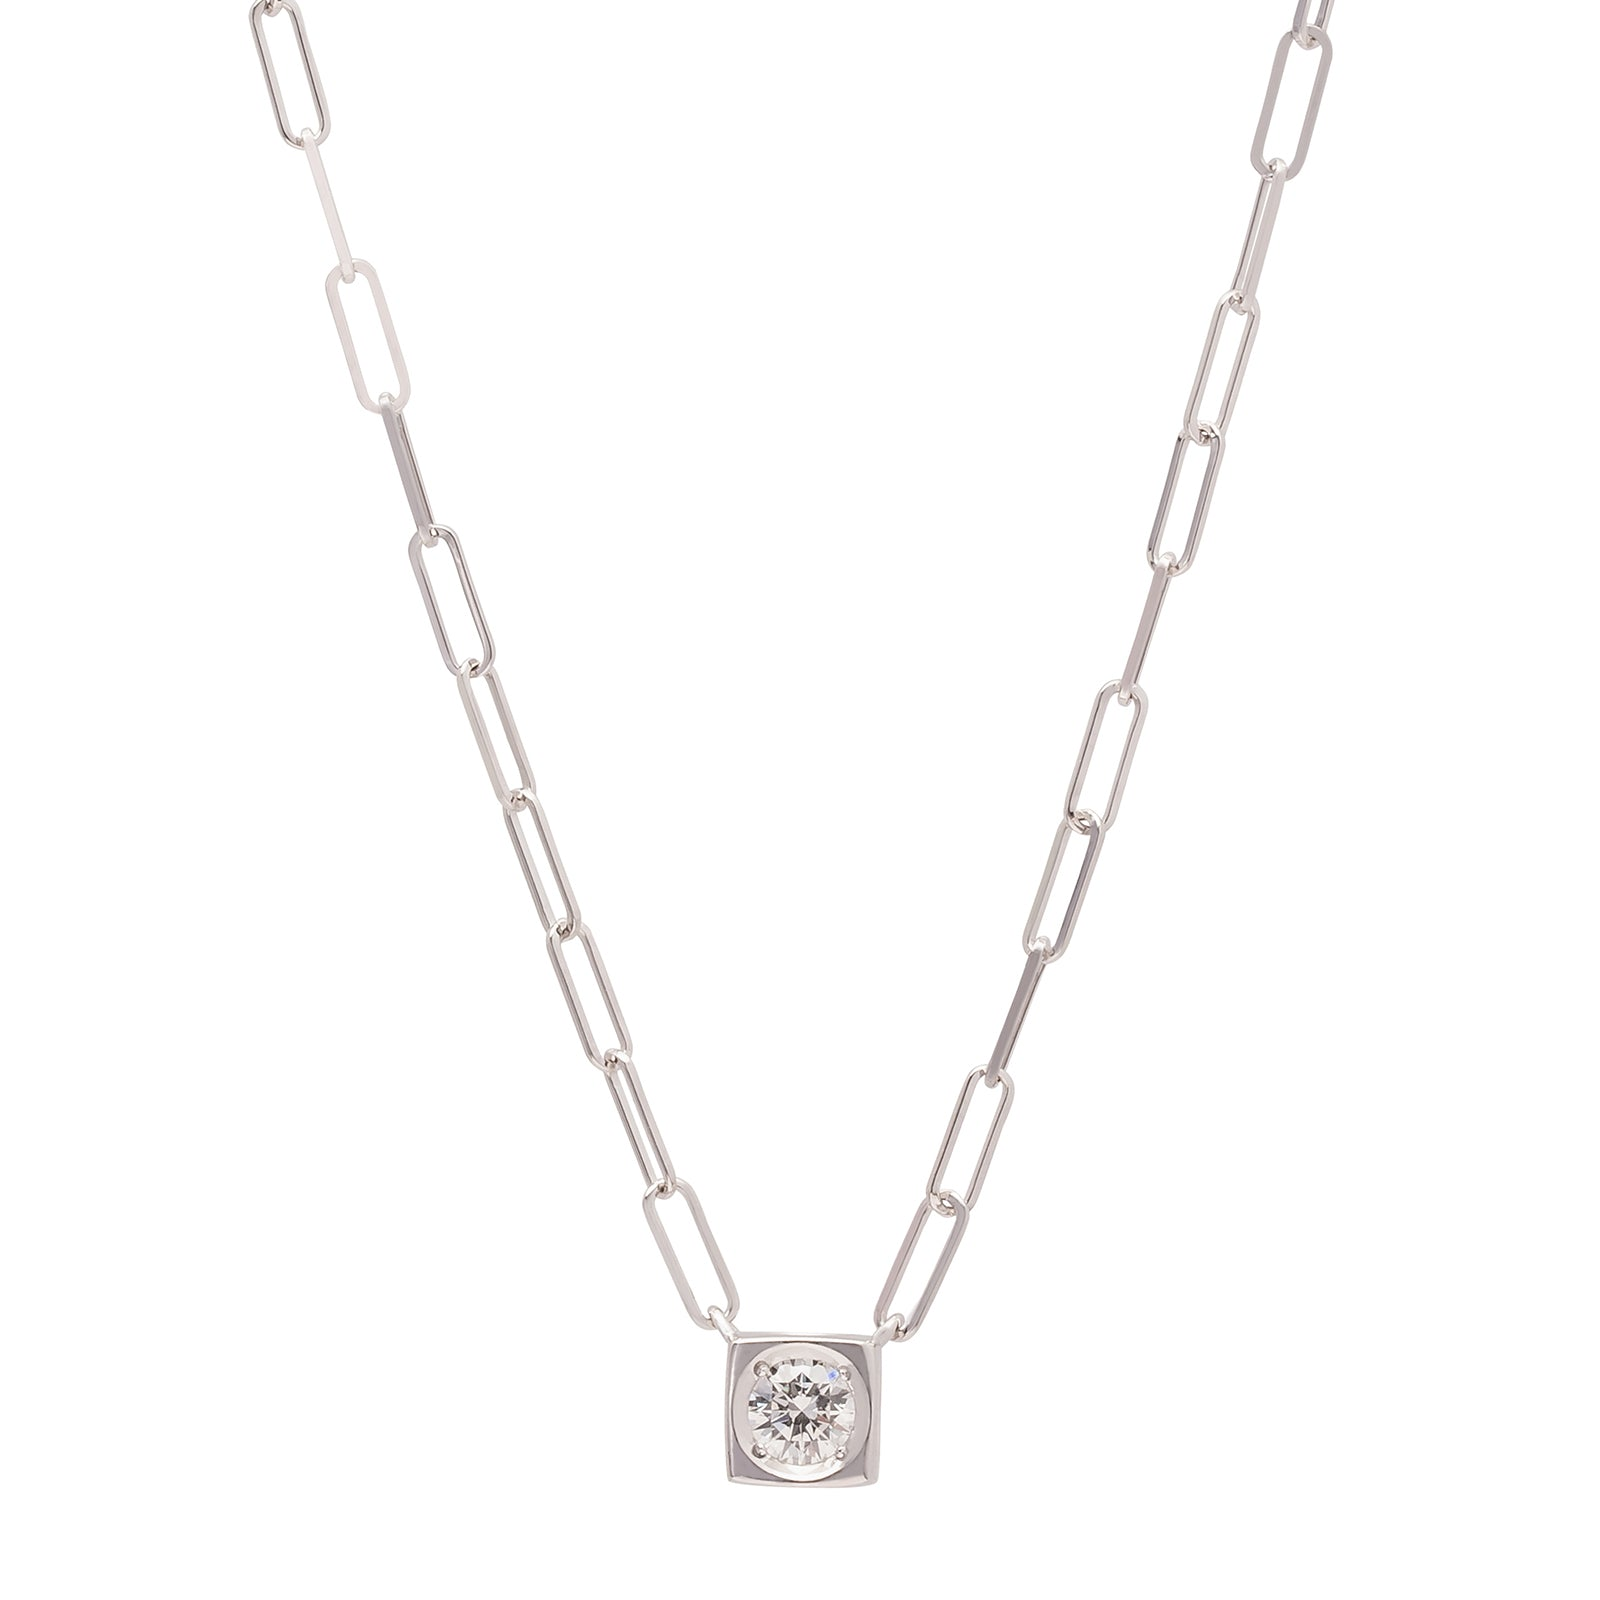 Dinh Van Le Cube Diamant Large Neckalce - White Gold - Necklaces - Broken English Jewelry